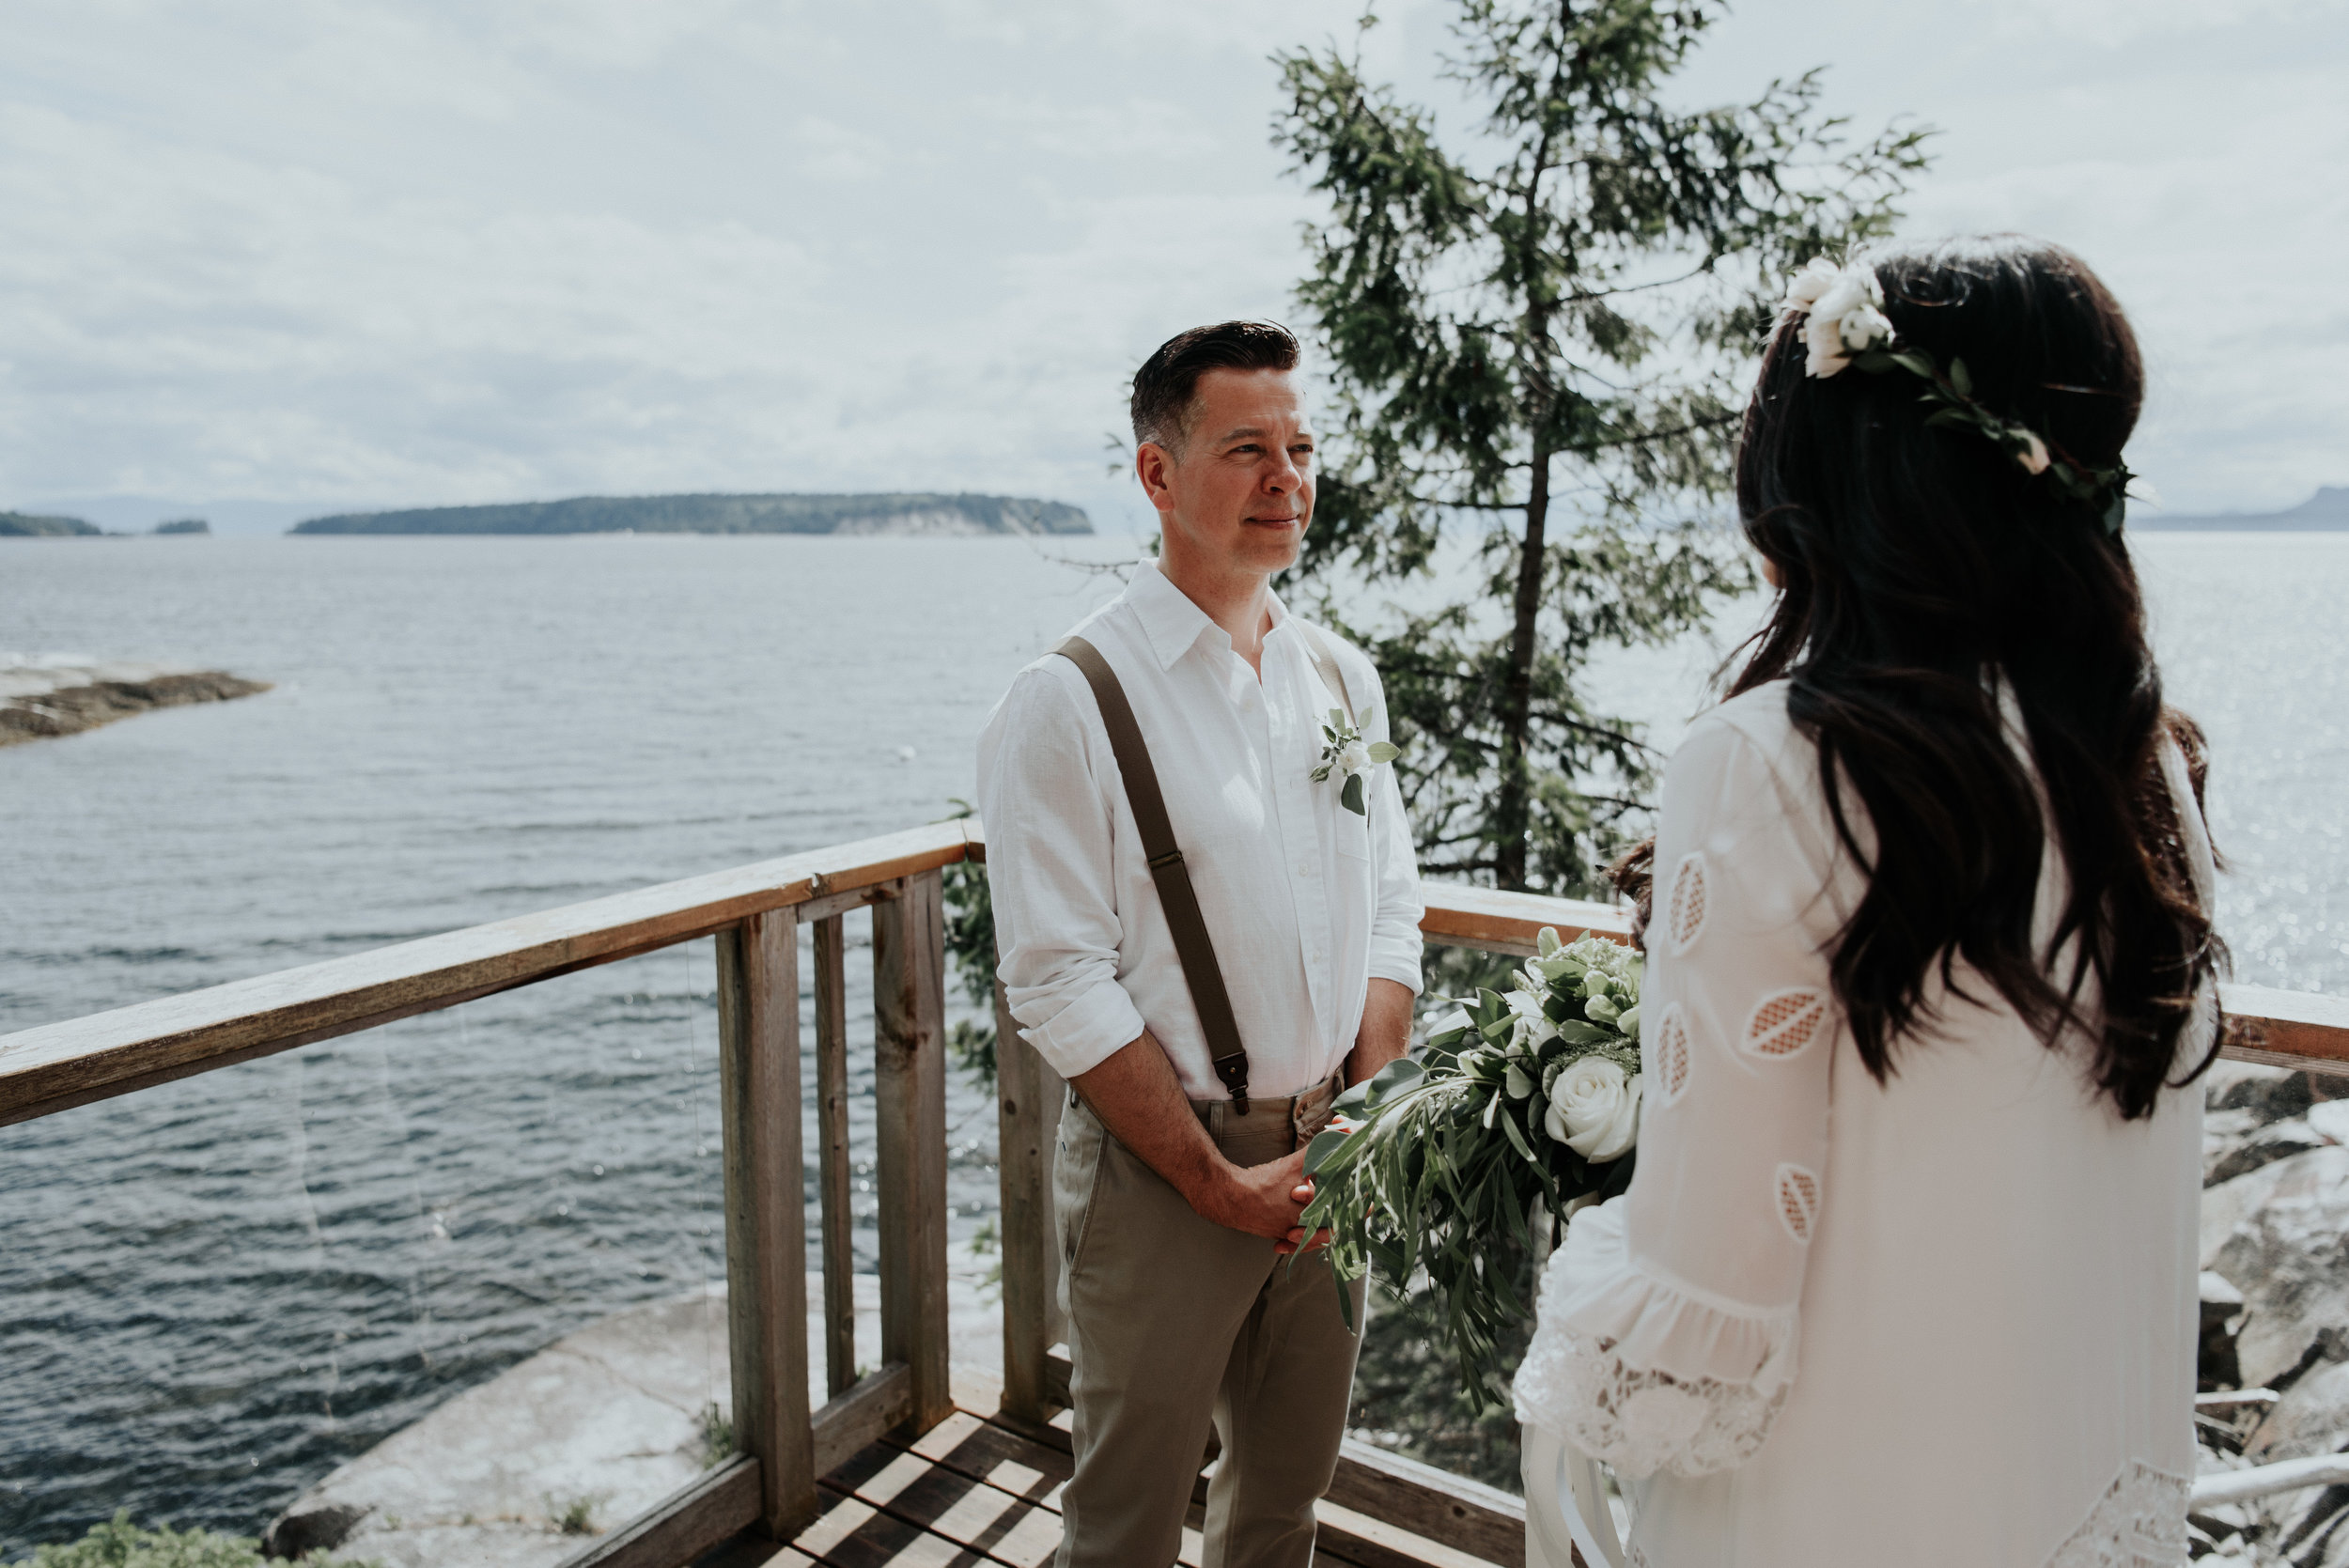 Ashley + Jeff - Rockwater Resort Elopement - Sunshine Coast BC Photographer - Laura Olson Photography-3590.jpg